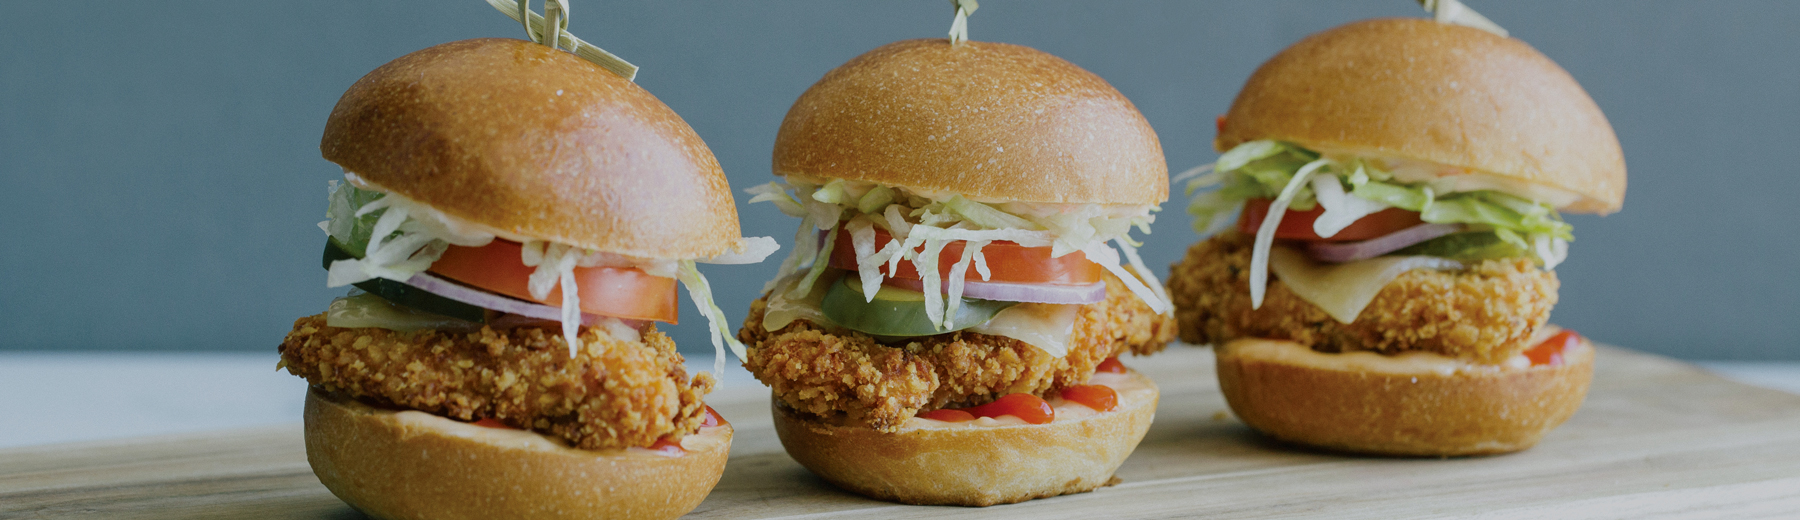 Crispy Chicken Burgers | Cactus Club Cafe